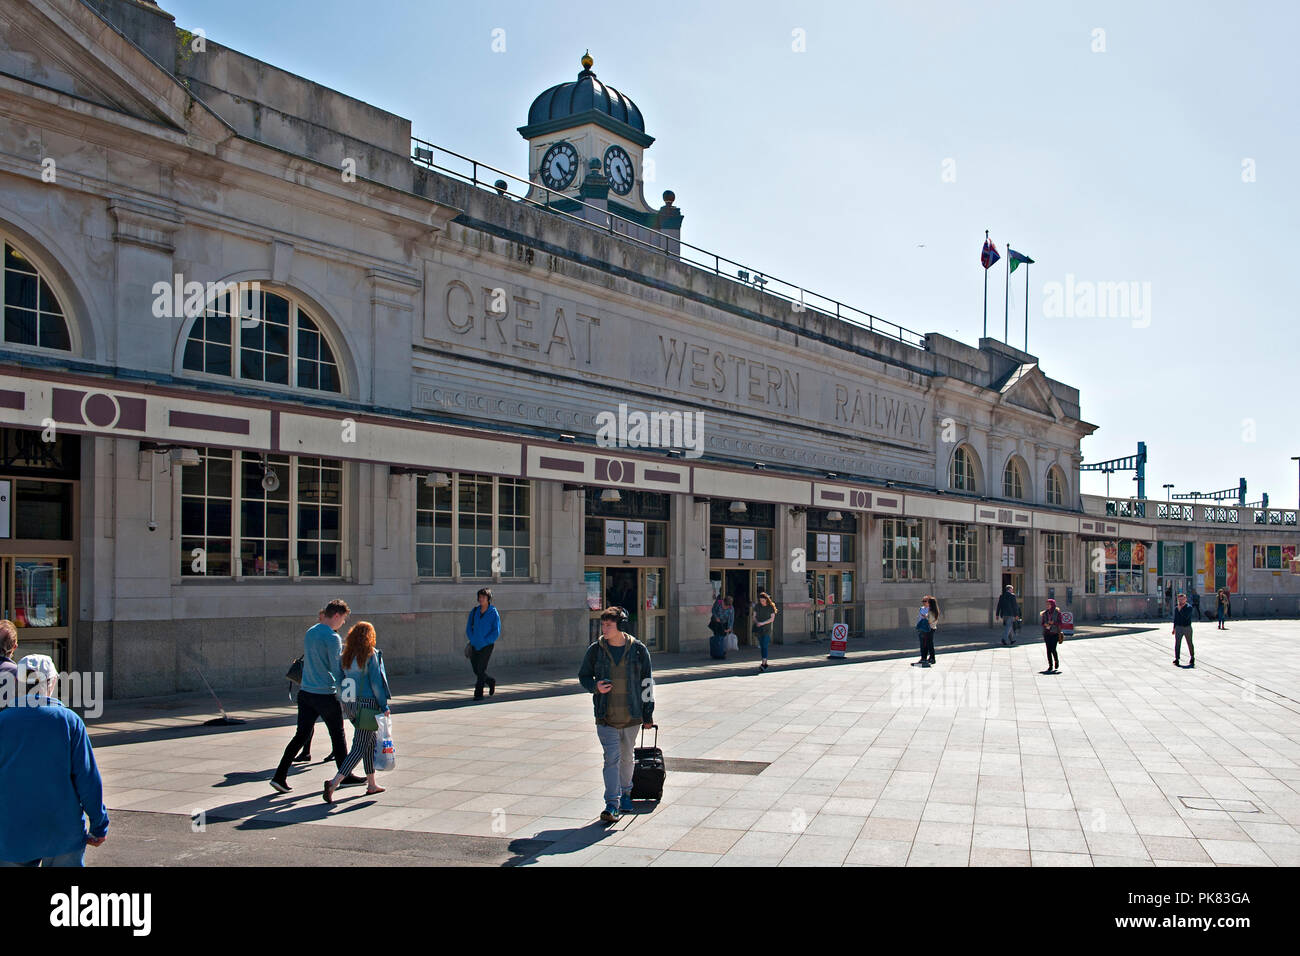 Cardiff Central Railway Station, Cardiff, Wales, UK Stock Photo